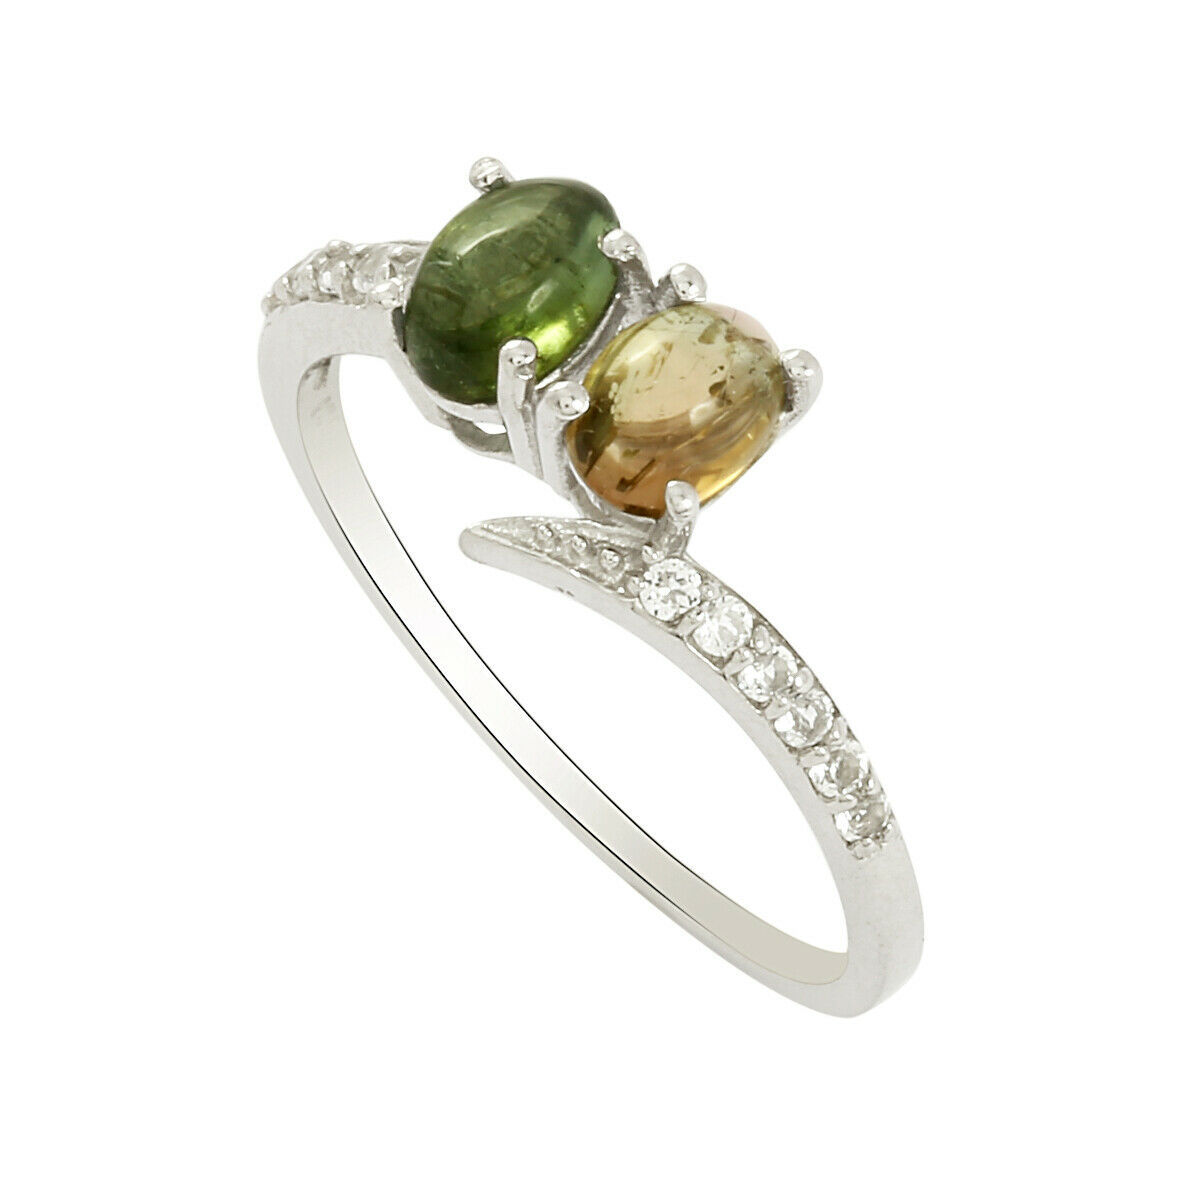 Multi Tourmaline With White Topaz 925 Silver Bypass Open Wrap Stacking Band Ring